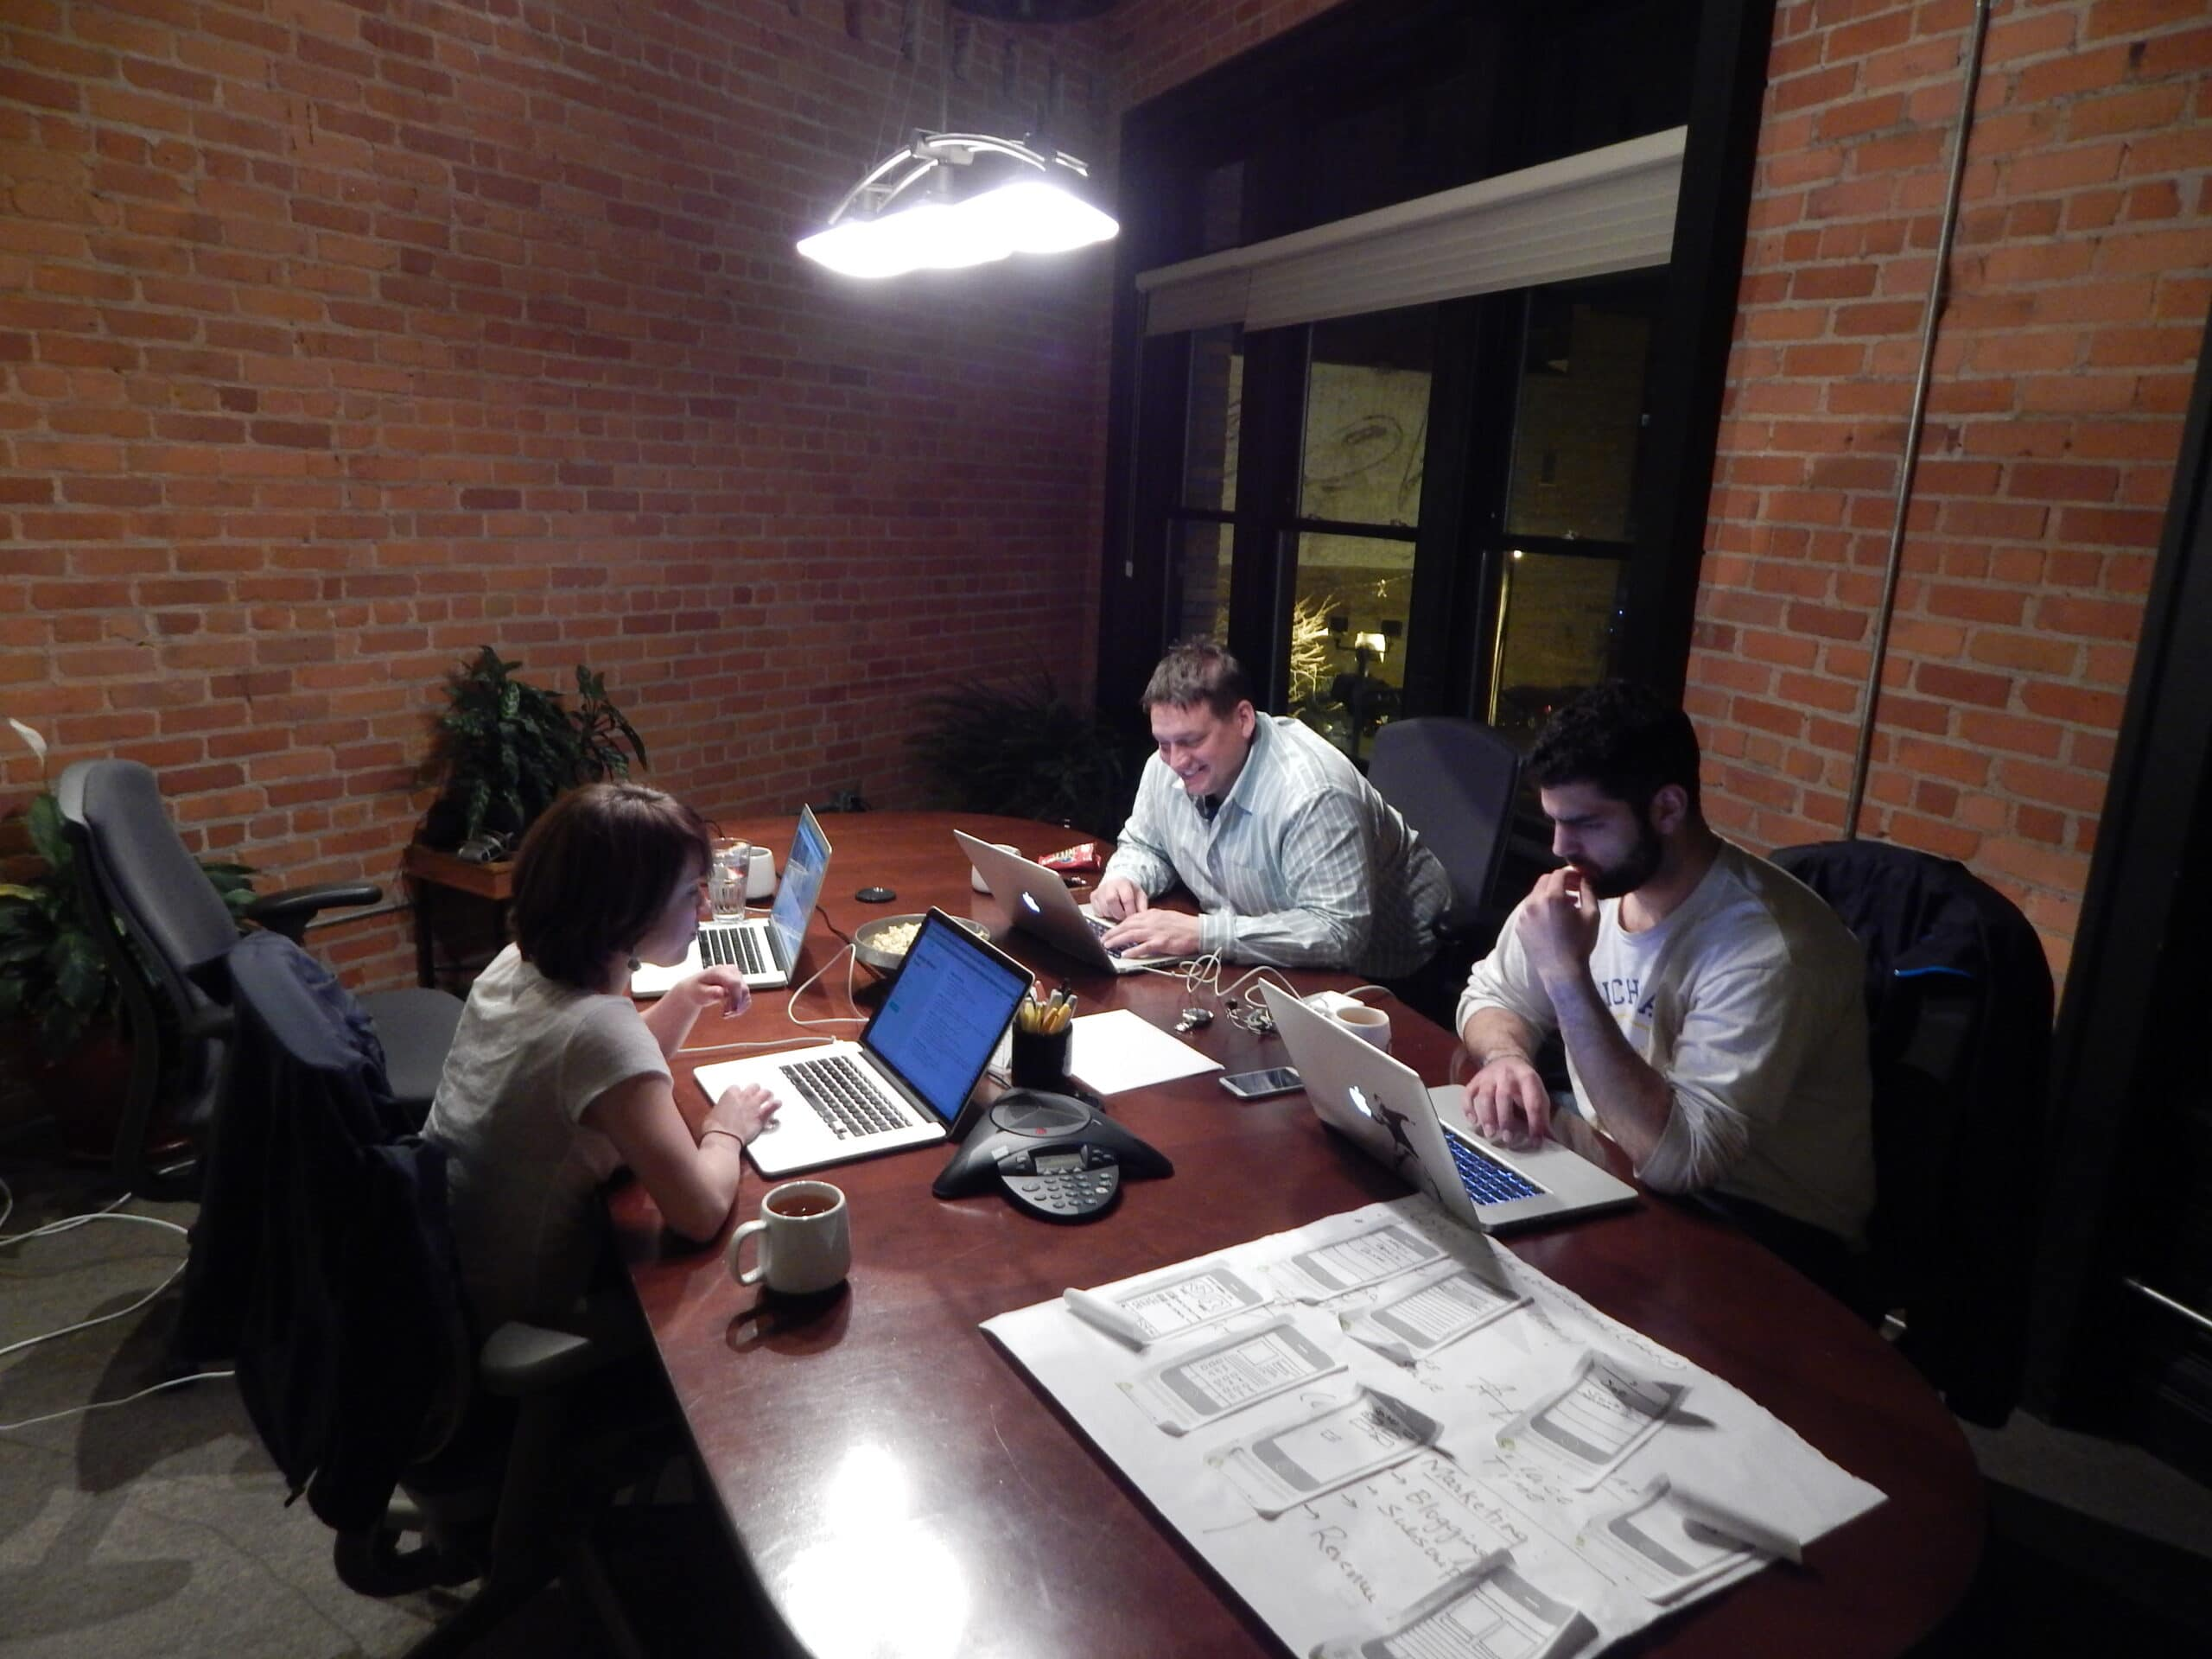 Working Late Office